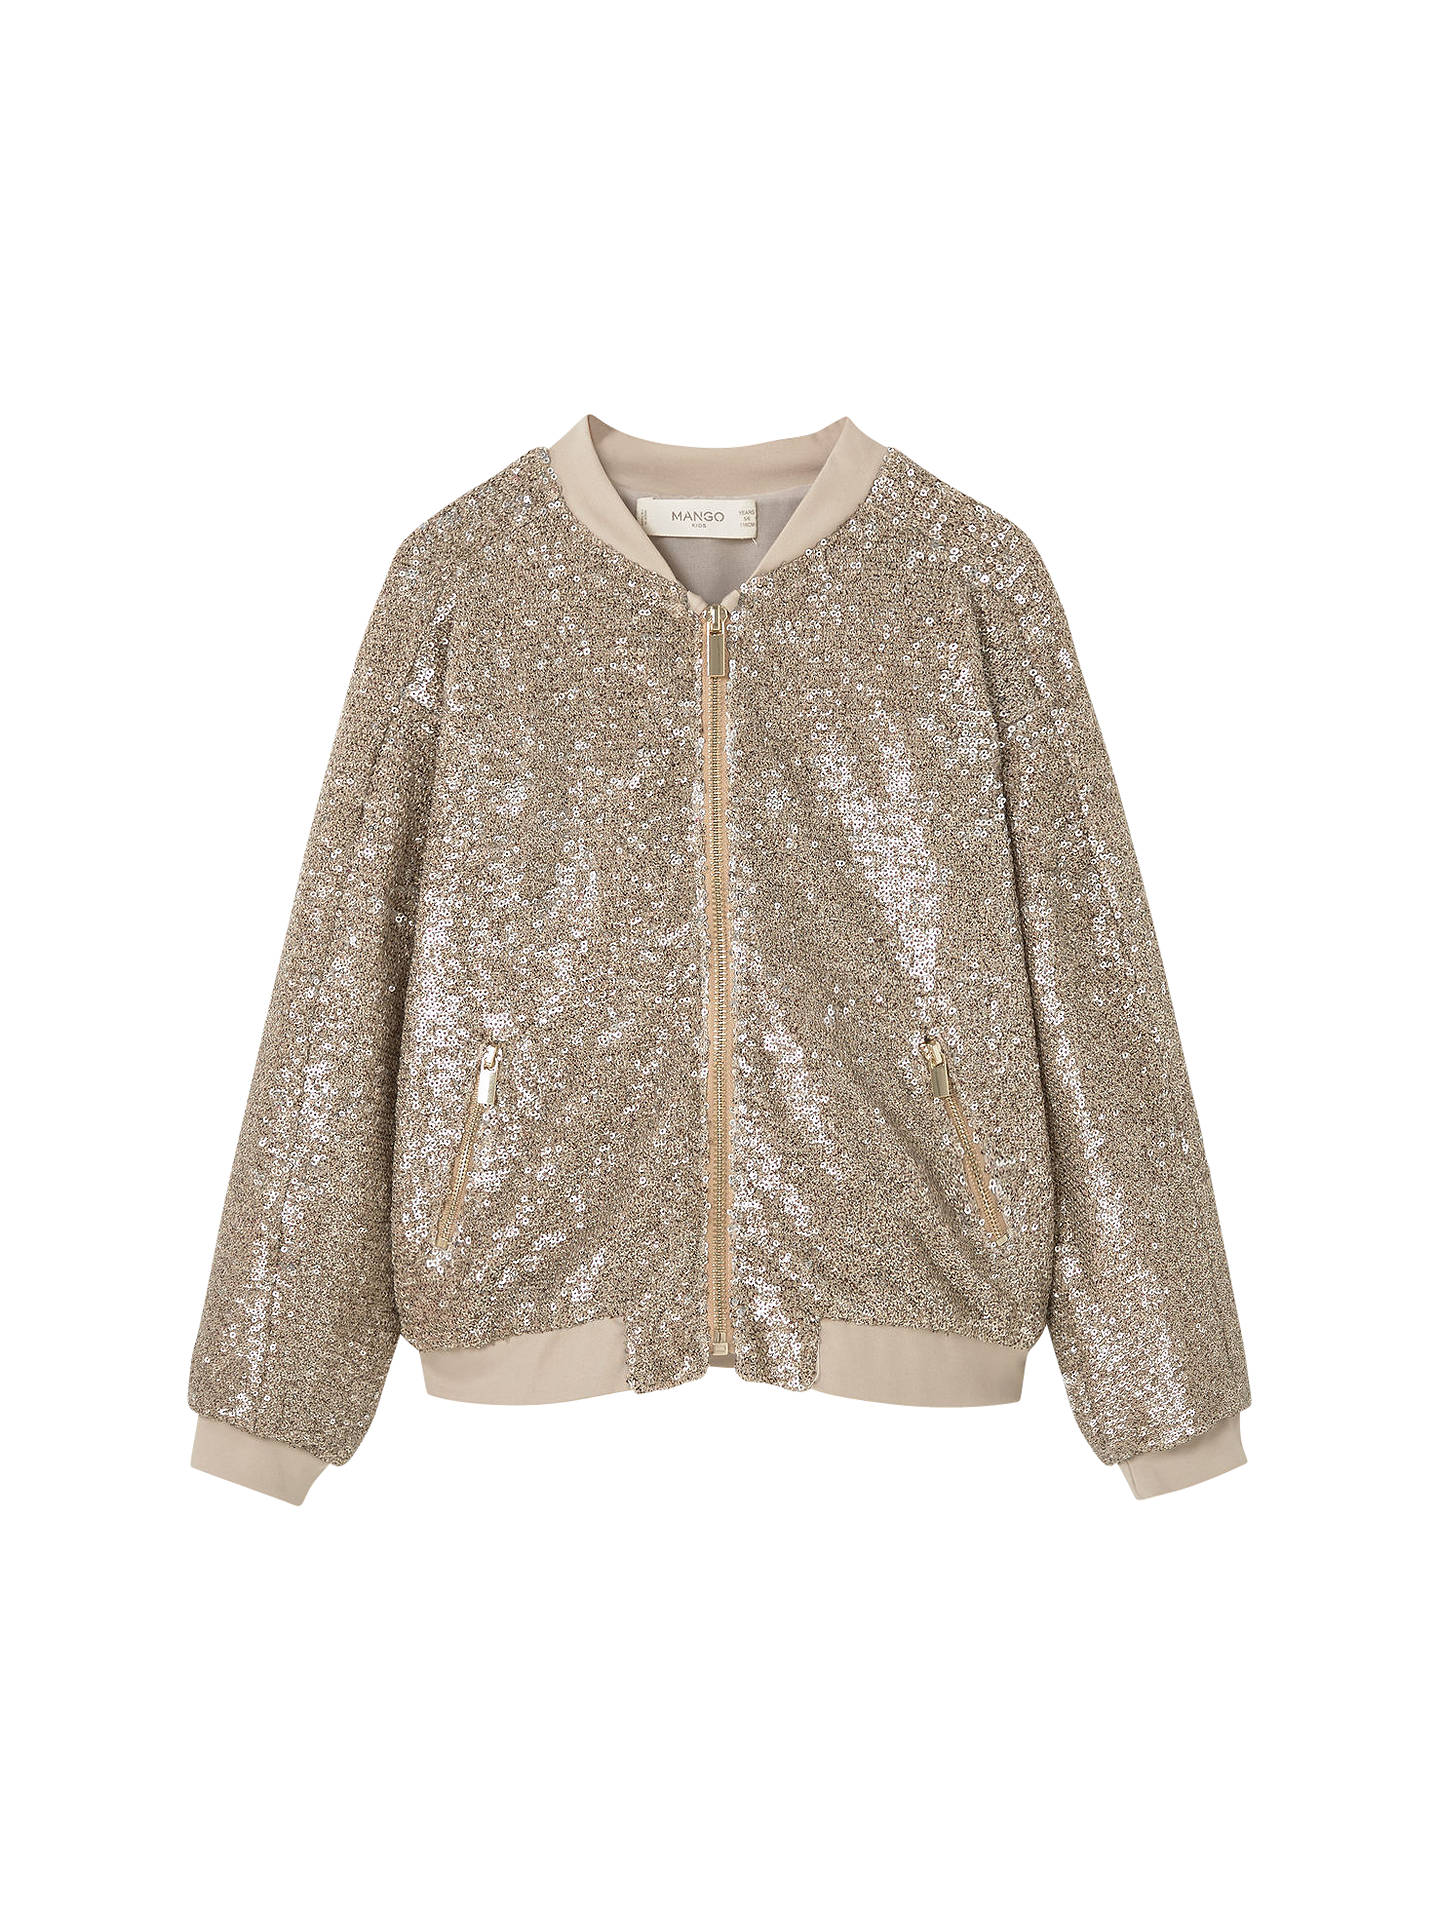 4975a9f08 Buy Mango Kids Girls' Sequin Bomber Jacket, Gold, 4 years Online at  johnlewis ...